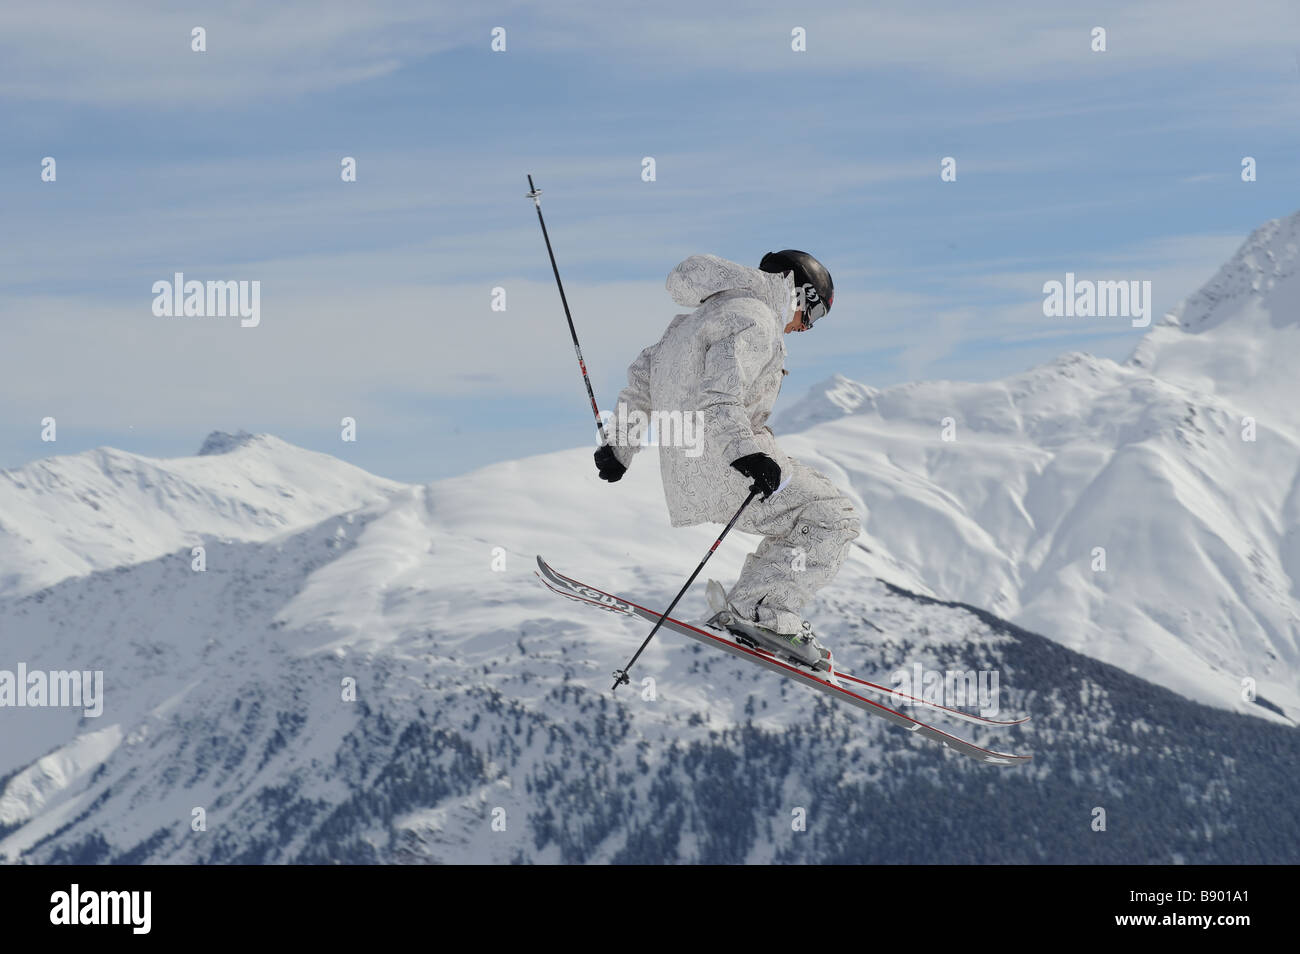 Freeskier jumping wildly into the skies in the swiss alps - Stock Image